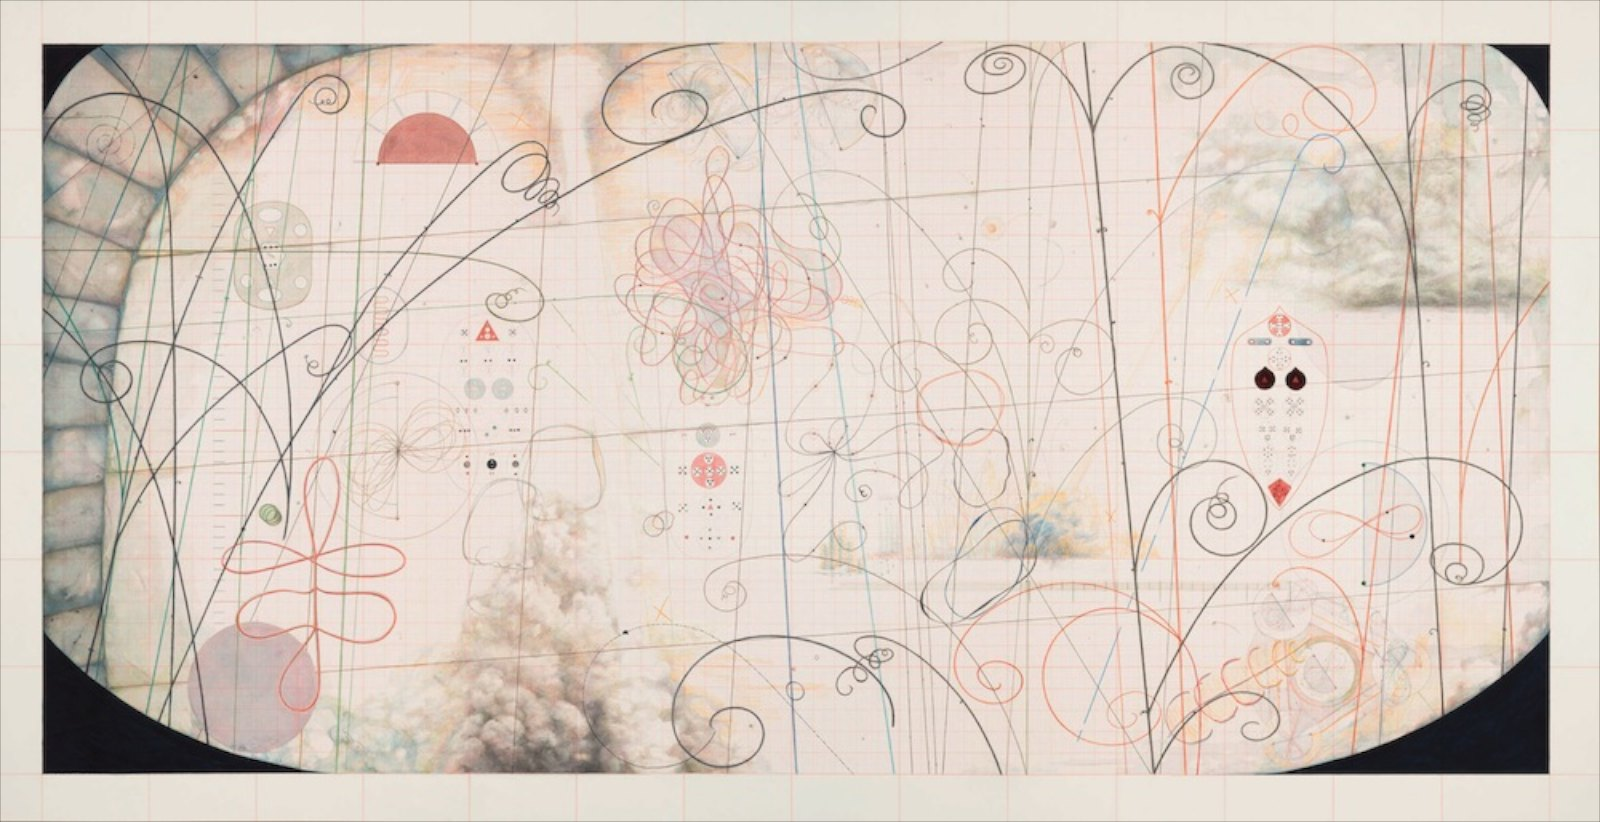 Världarnas Krig, 2013, gouache, ink and water-soluble colour pencil on paper, 114 x 221,5 cm